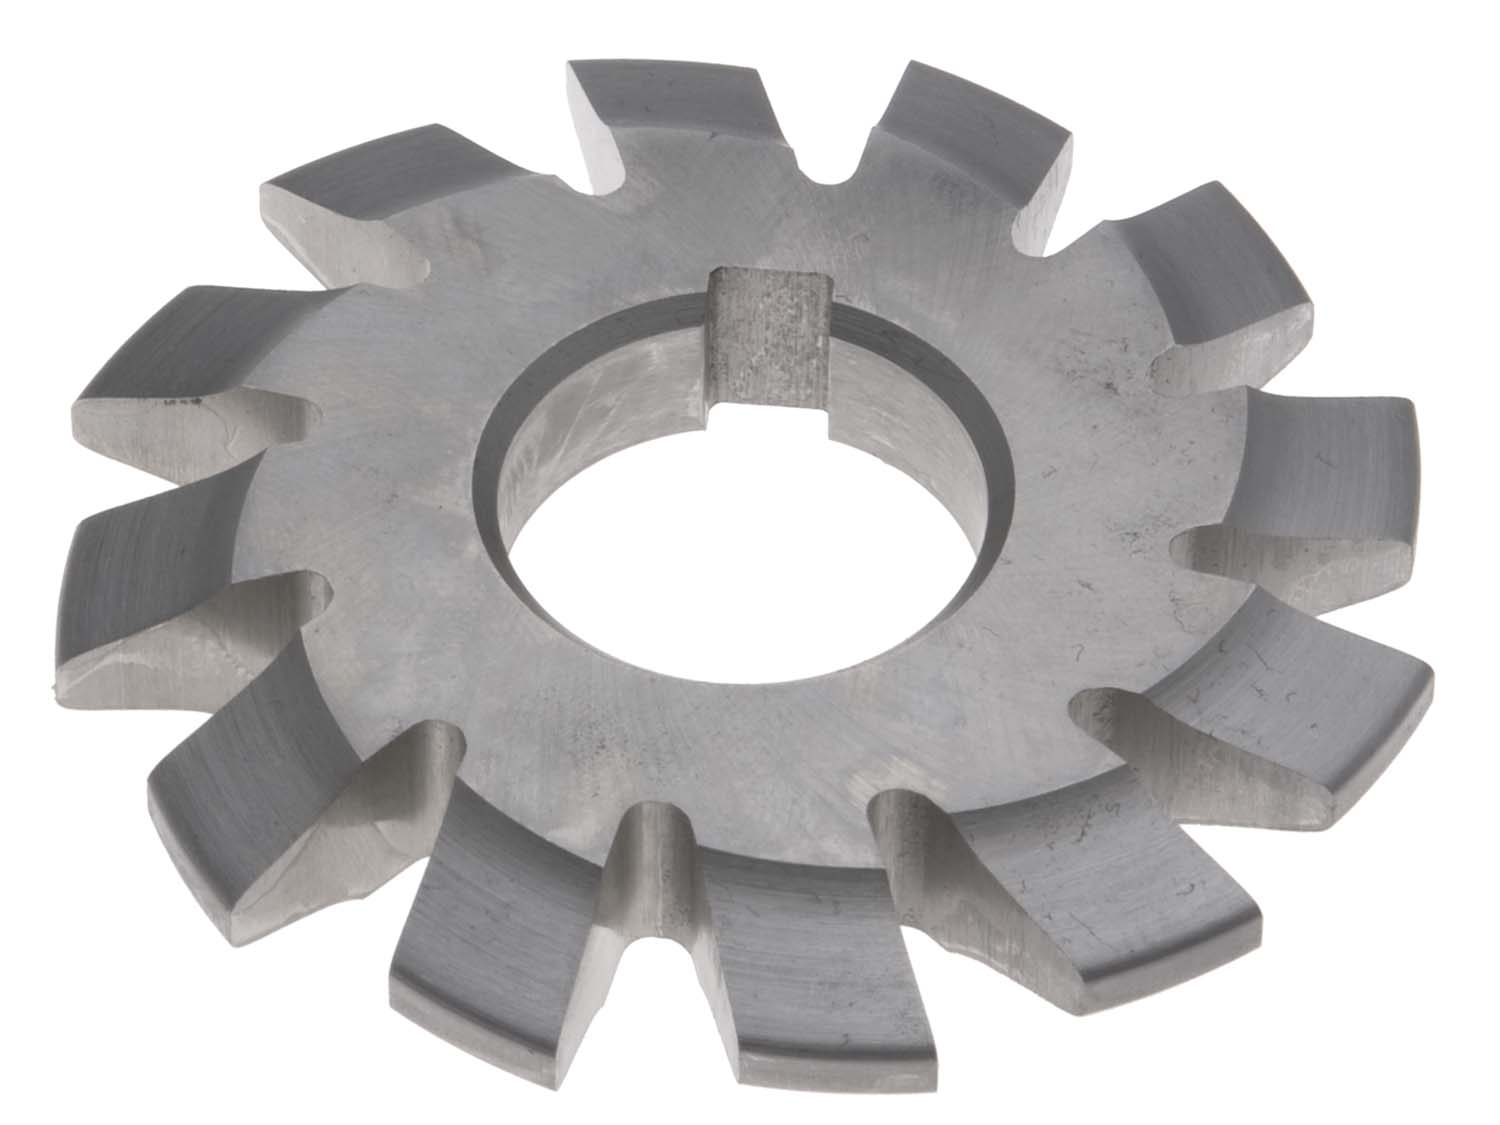 12 Diametral Pitch # 5   Involute Gear Cutter - 1 Inch ID - 14-1/2 Degree Pressure Angle